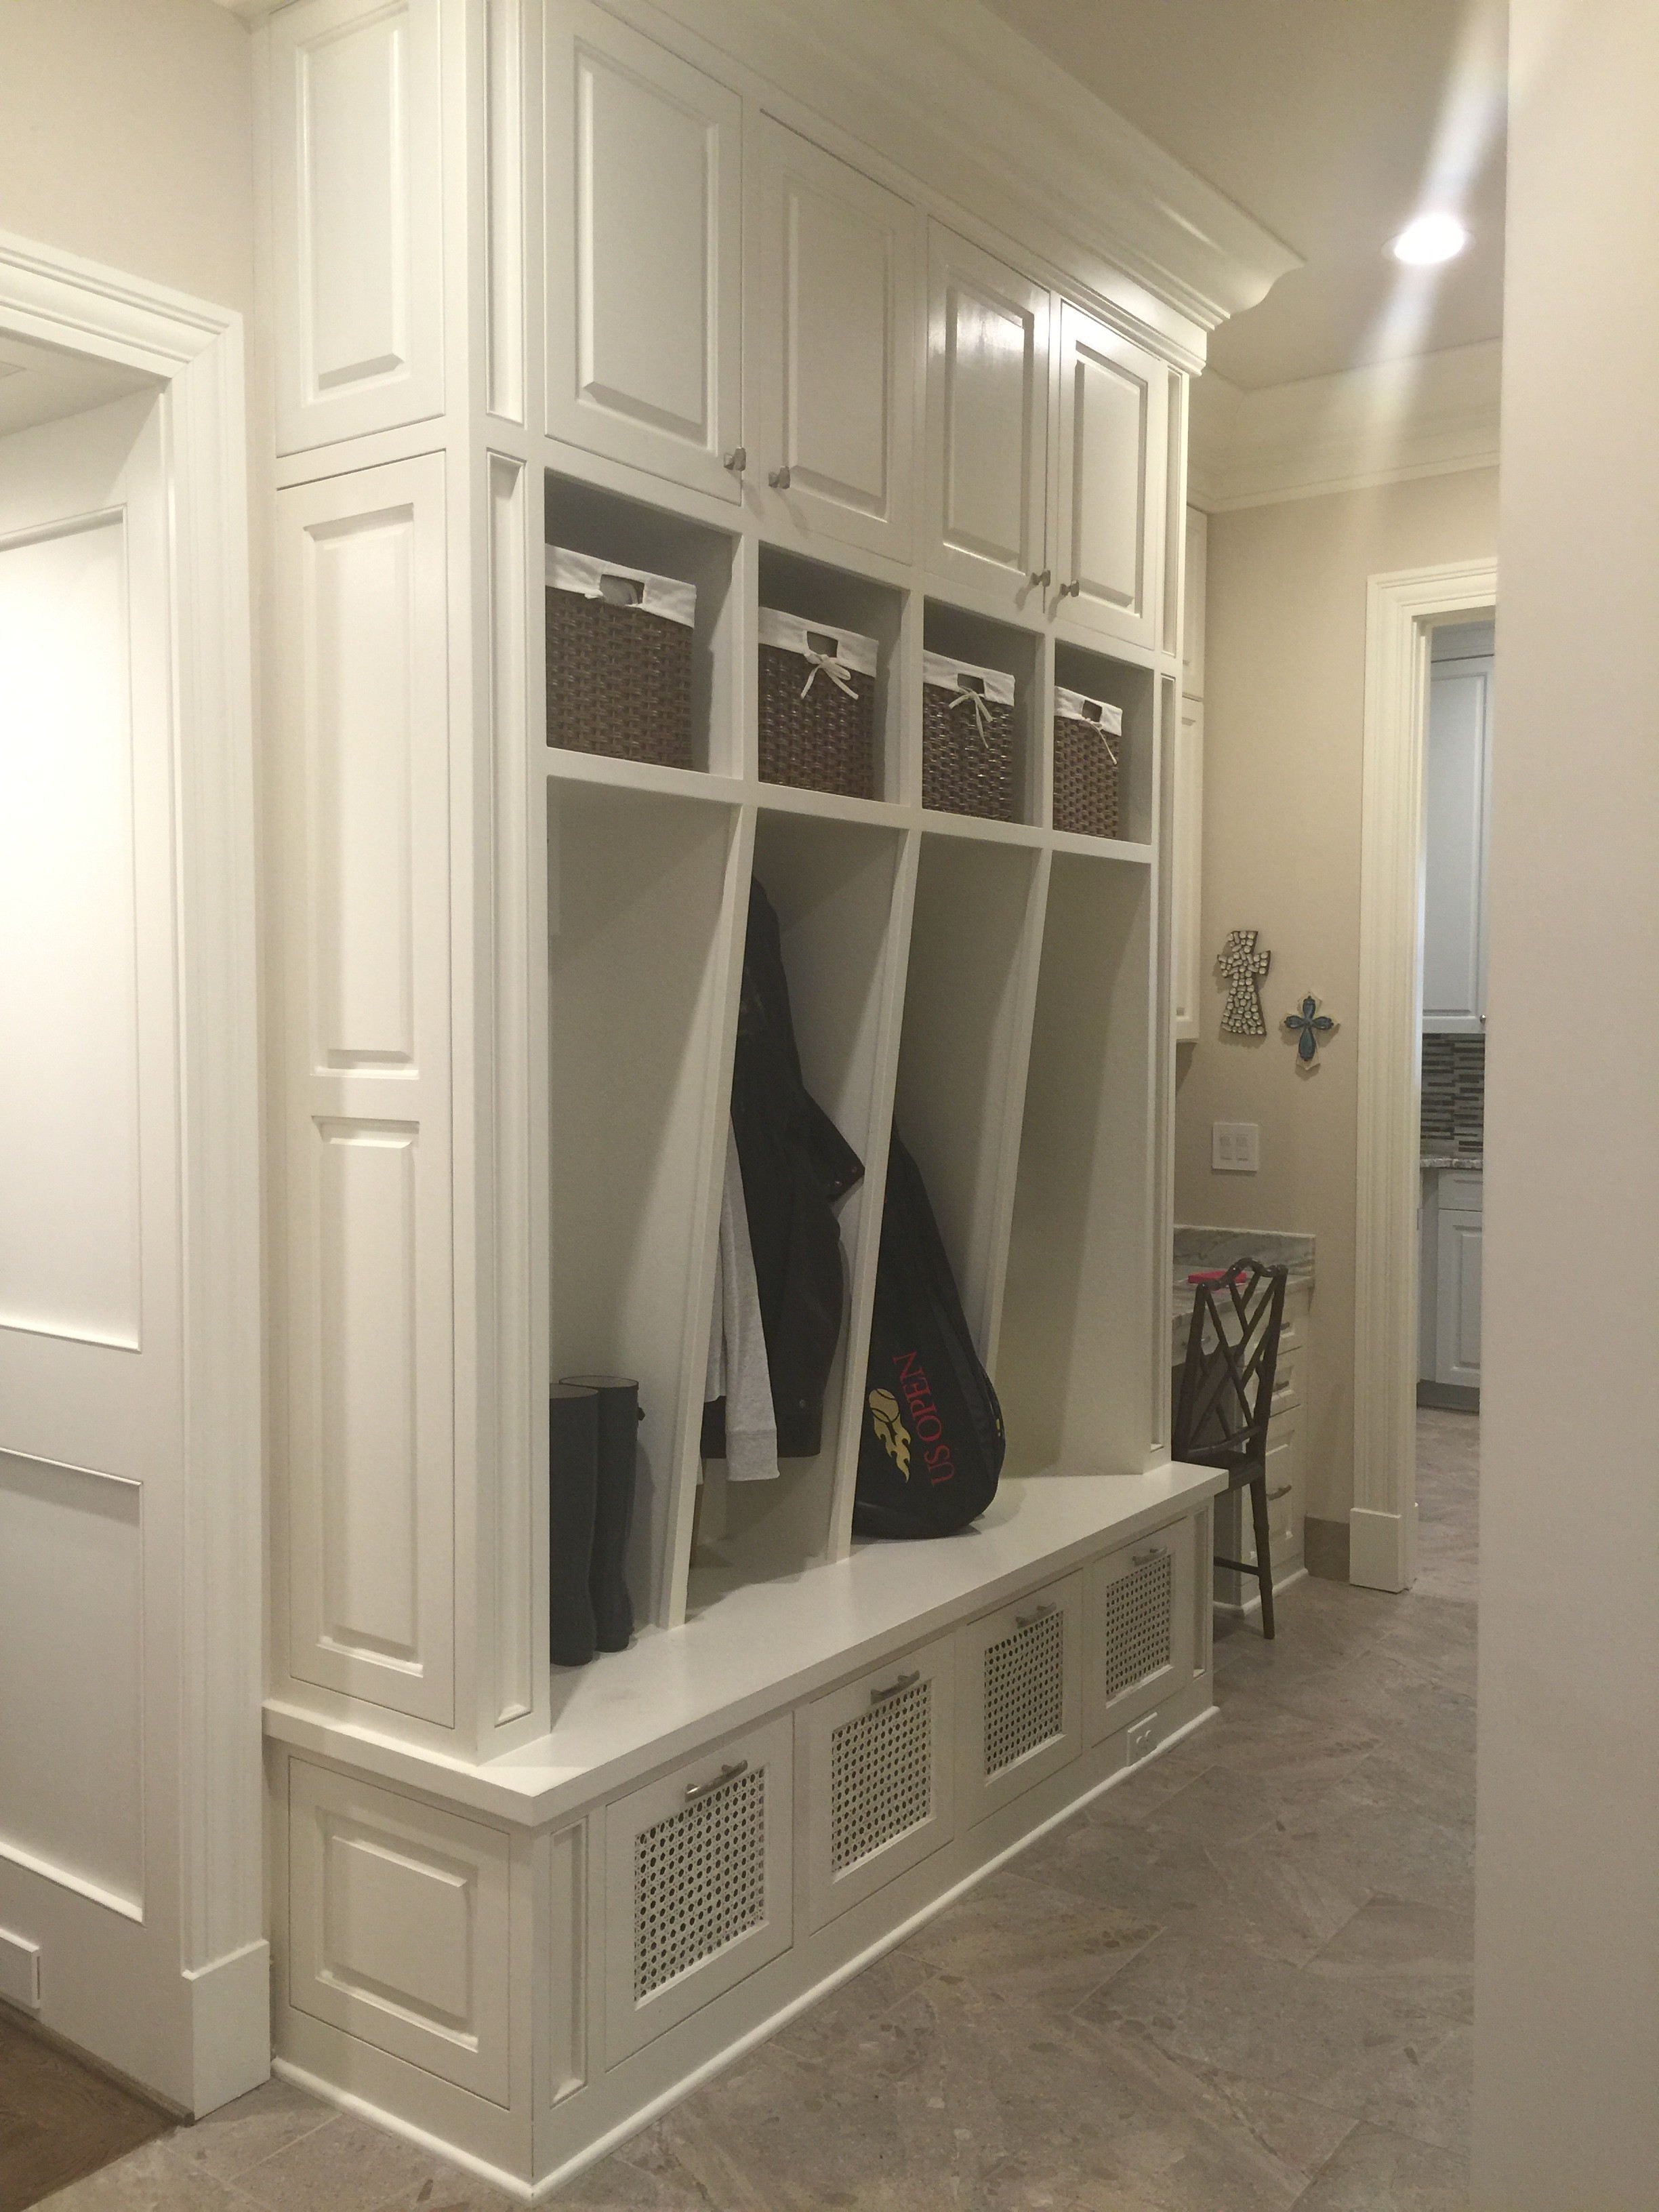 Christy Davis Interiors: Why we Love our Side Entry Cabinets